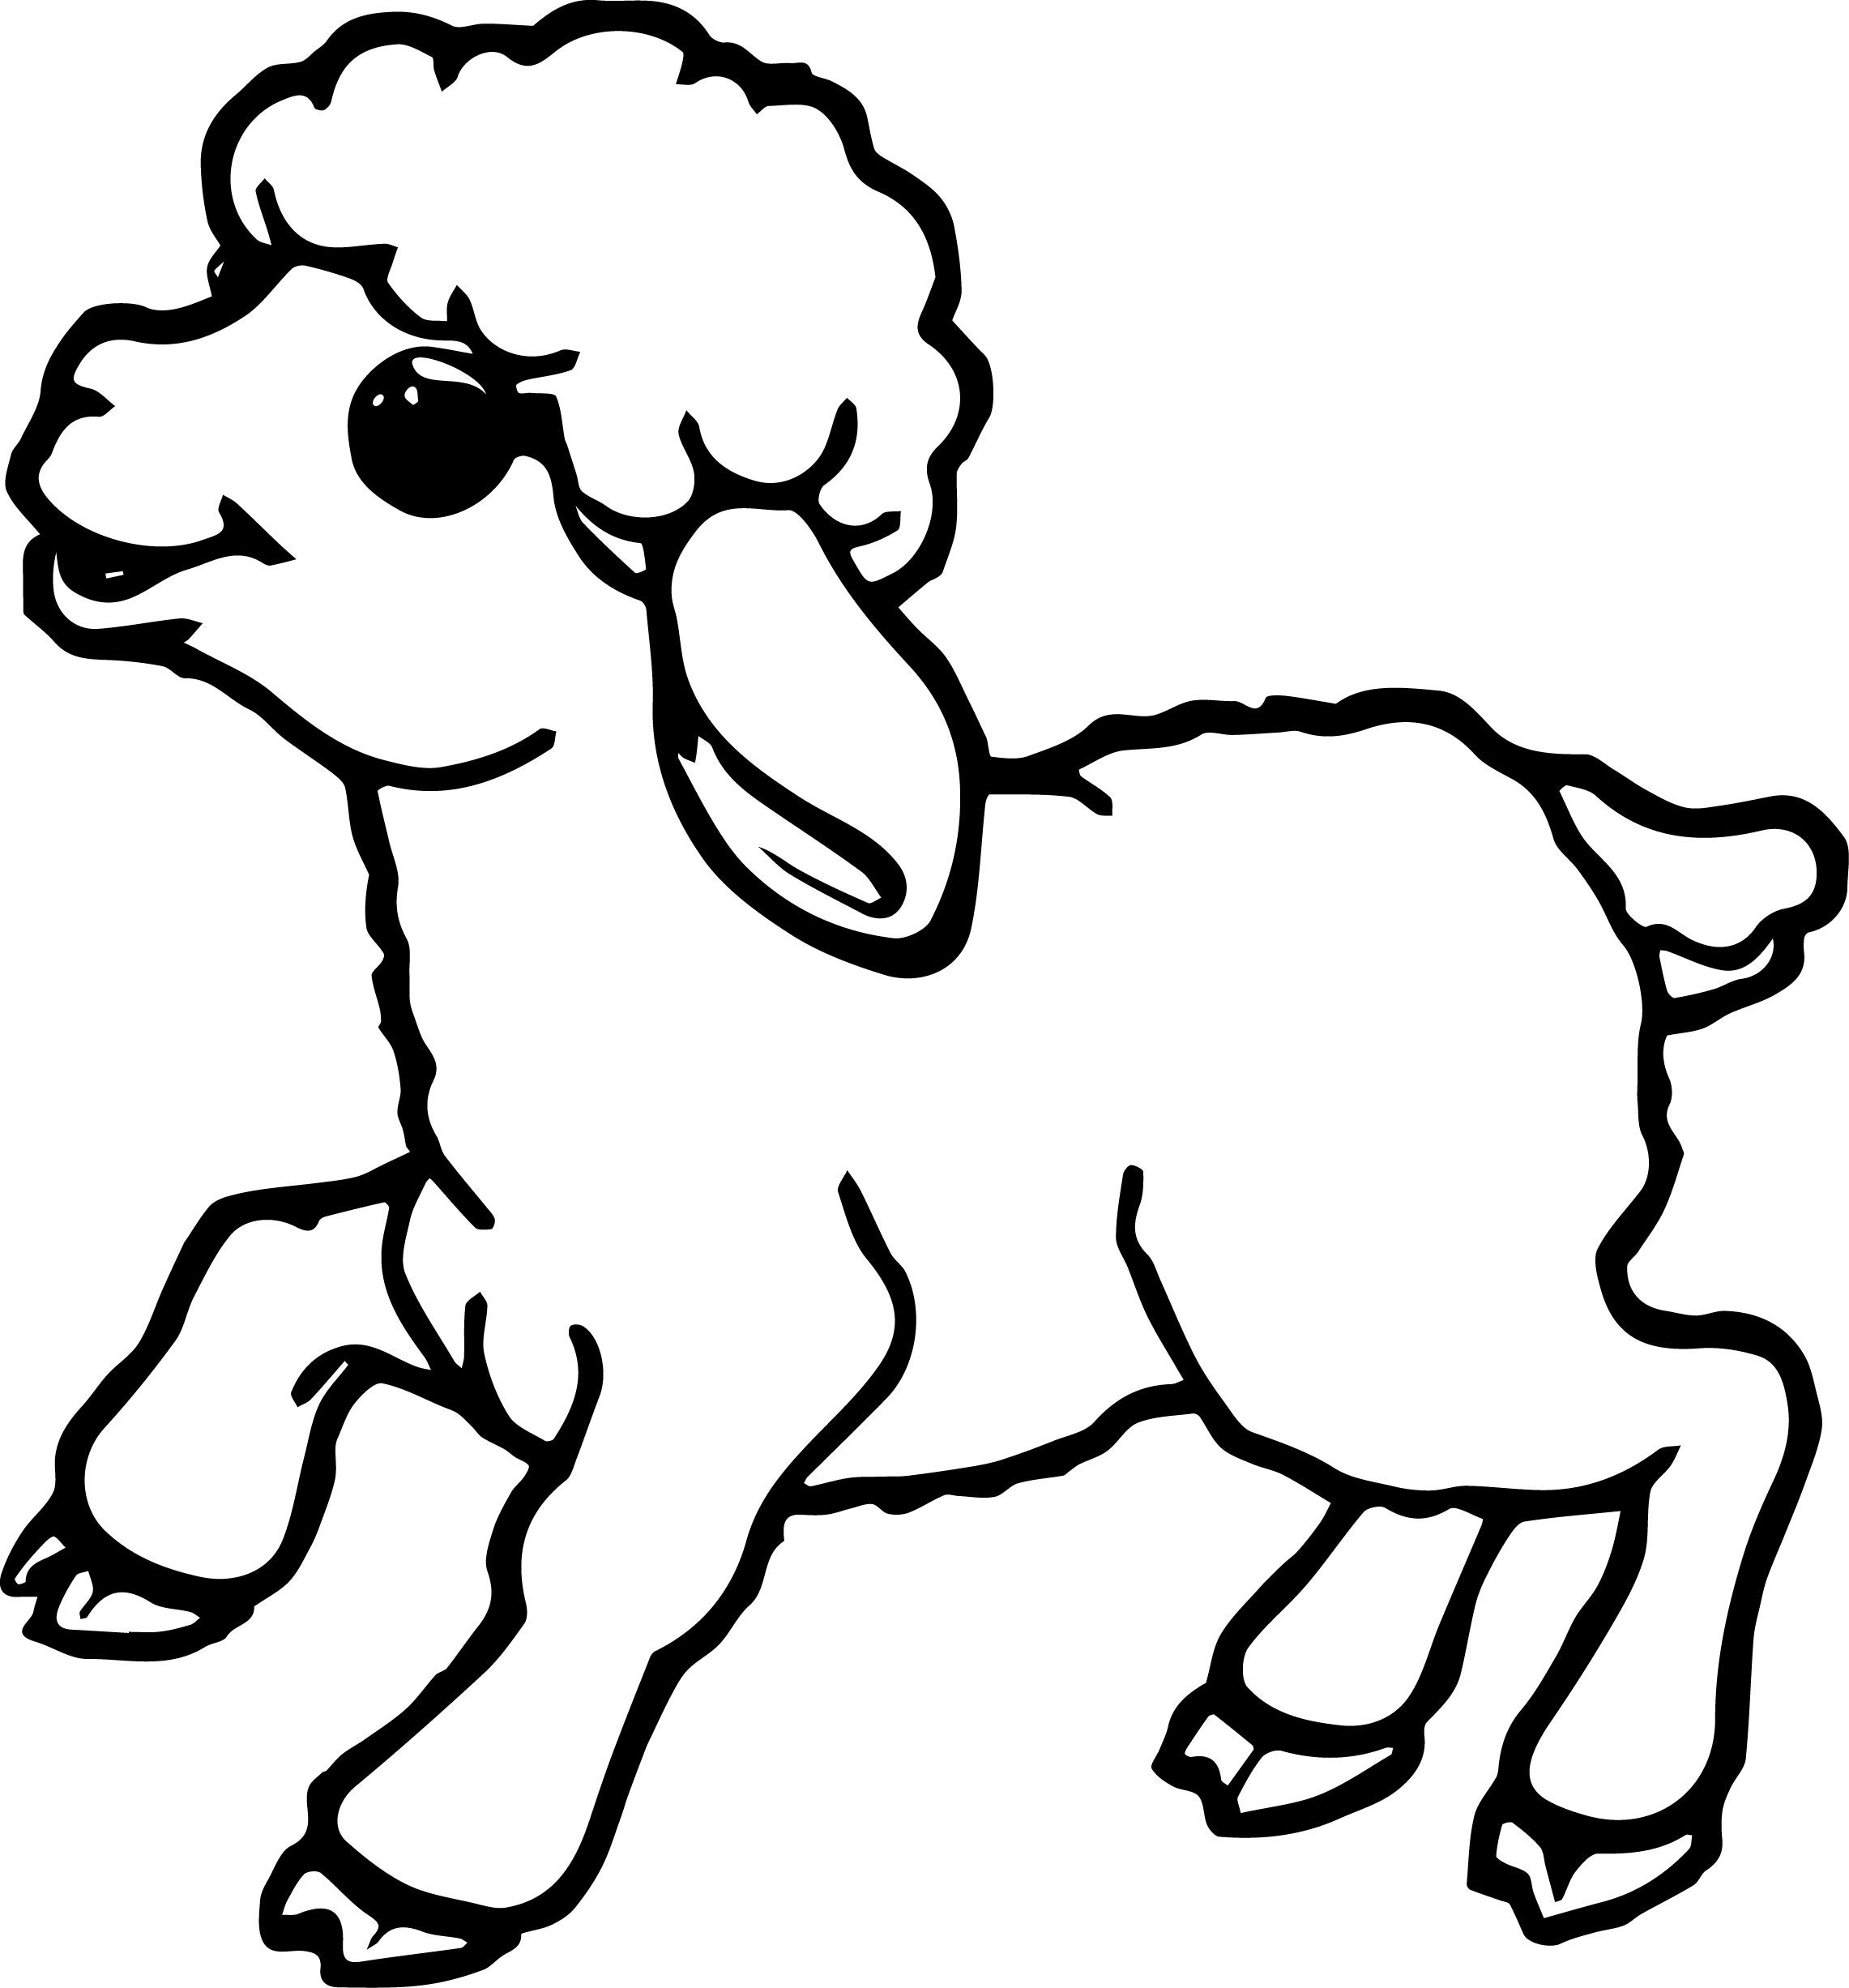 lamb pictures to color lamb 7 animals printable coloring pages lamb to pictures color